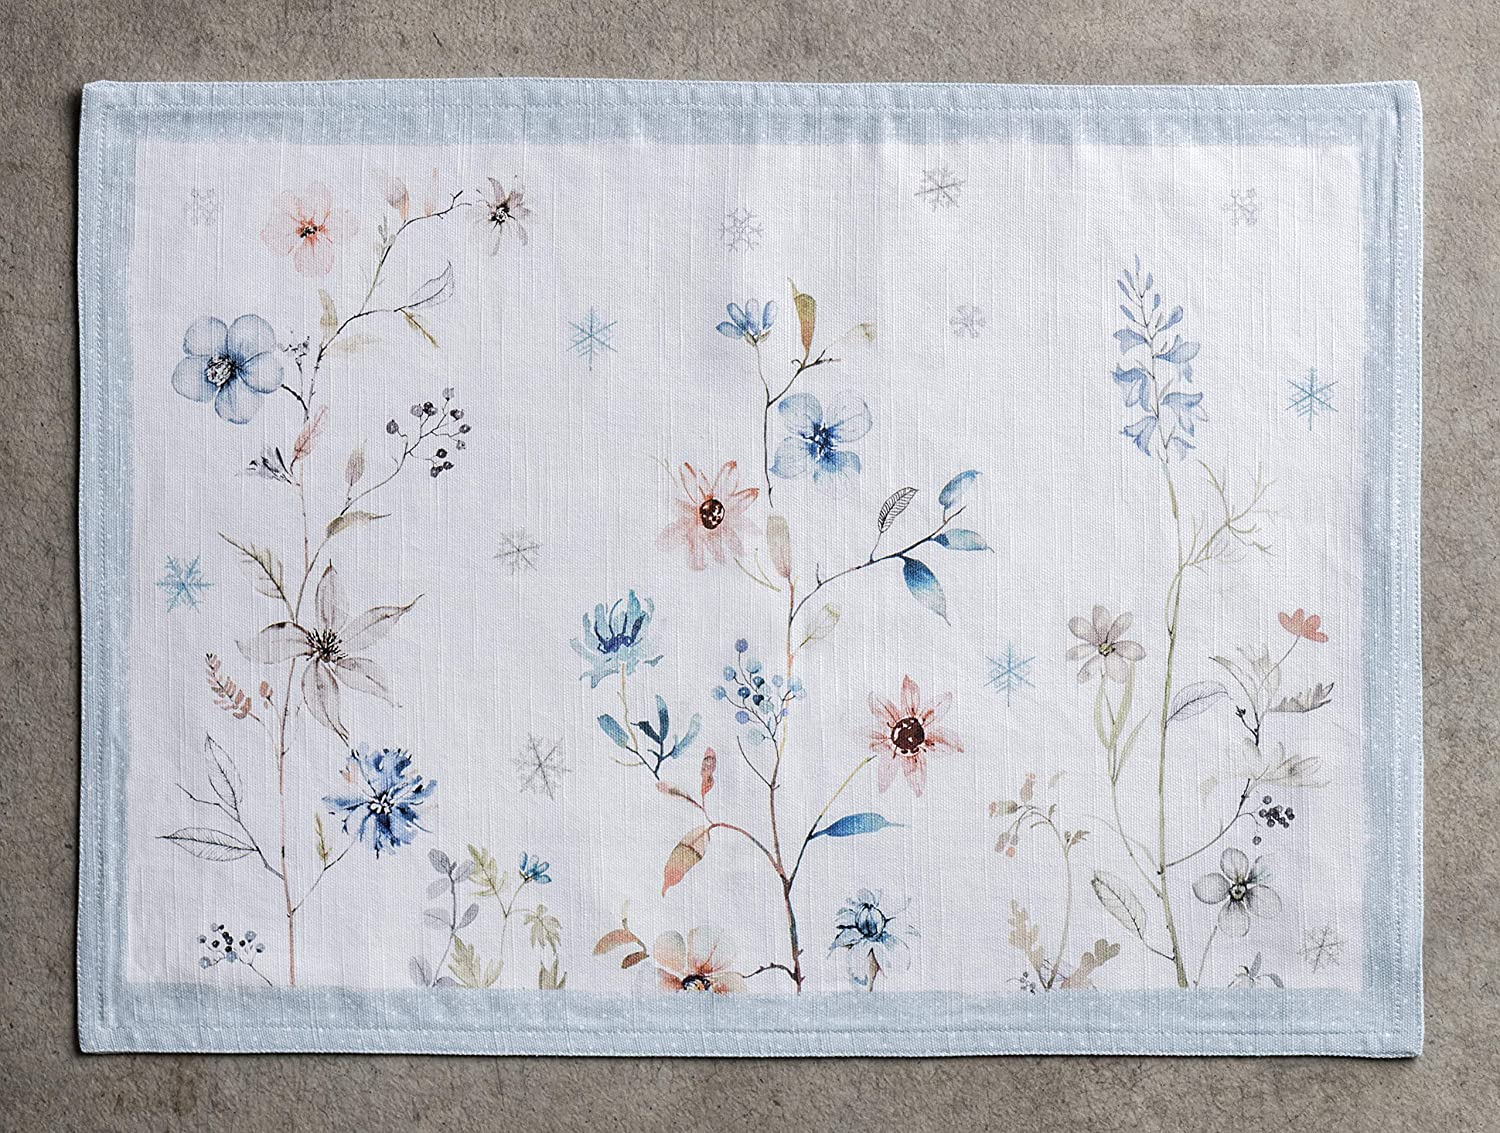 13 Inch by 19 Inch Everyday Use Thanksgiving//Christmas Maison d Hermine Bagatelle 100/% Cotton Set of 4 Placemats for Dining Table Dinner Parties Kitchen Wedding